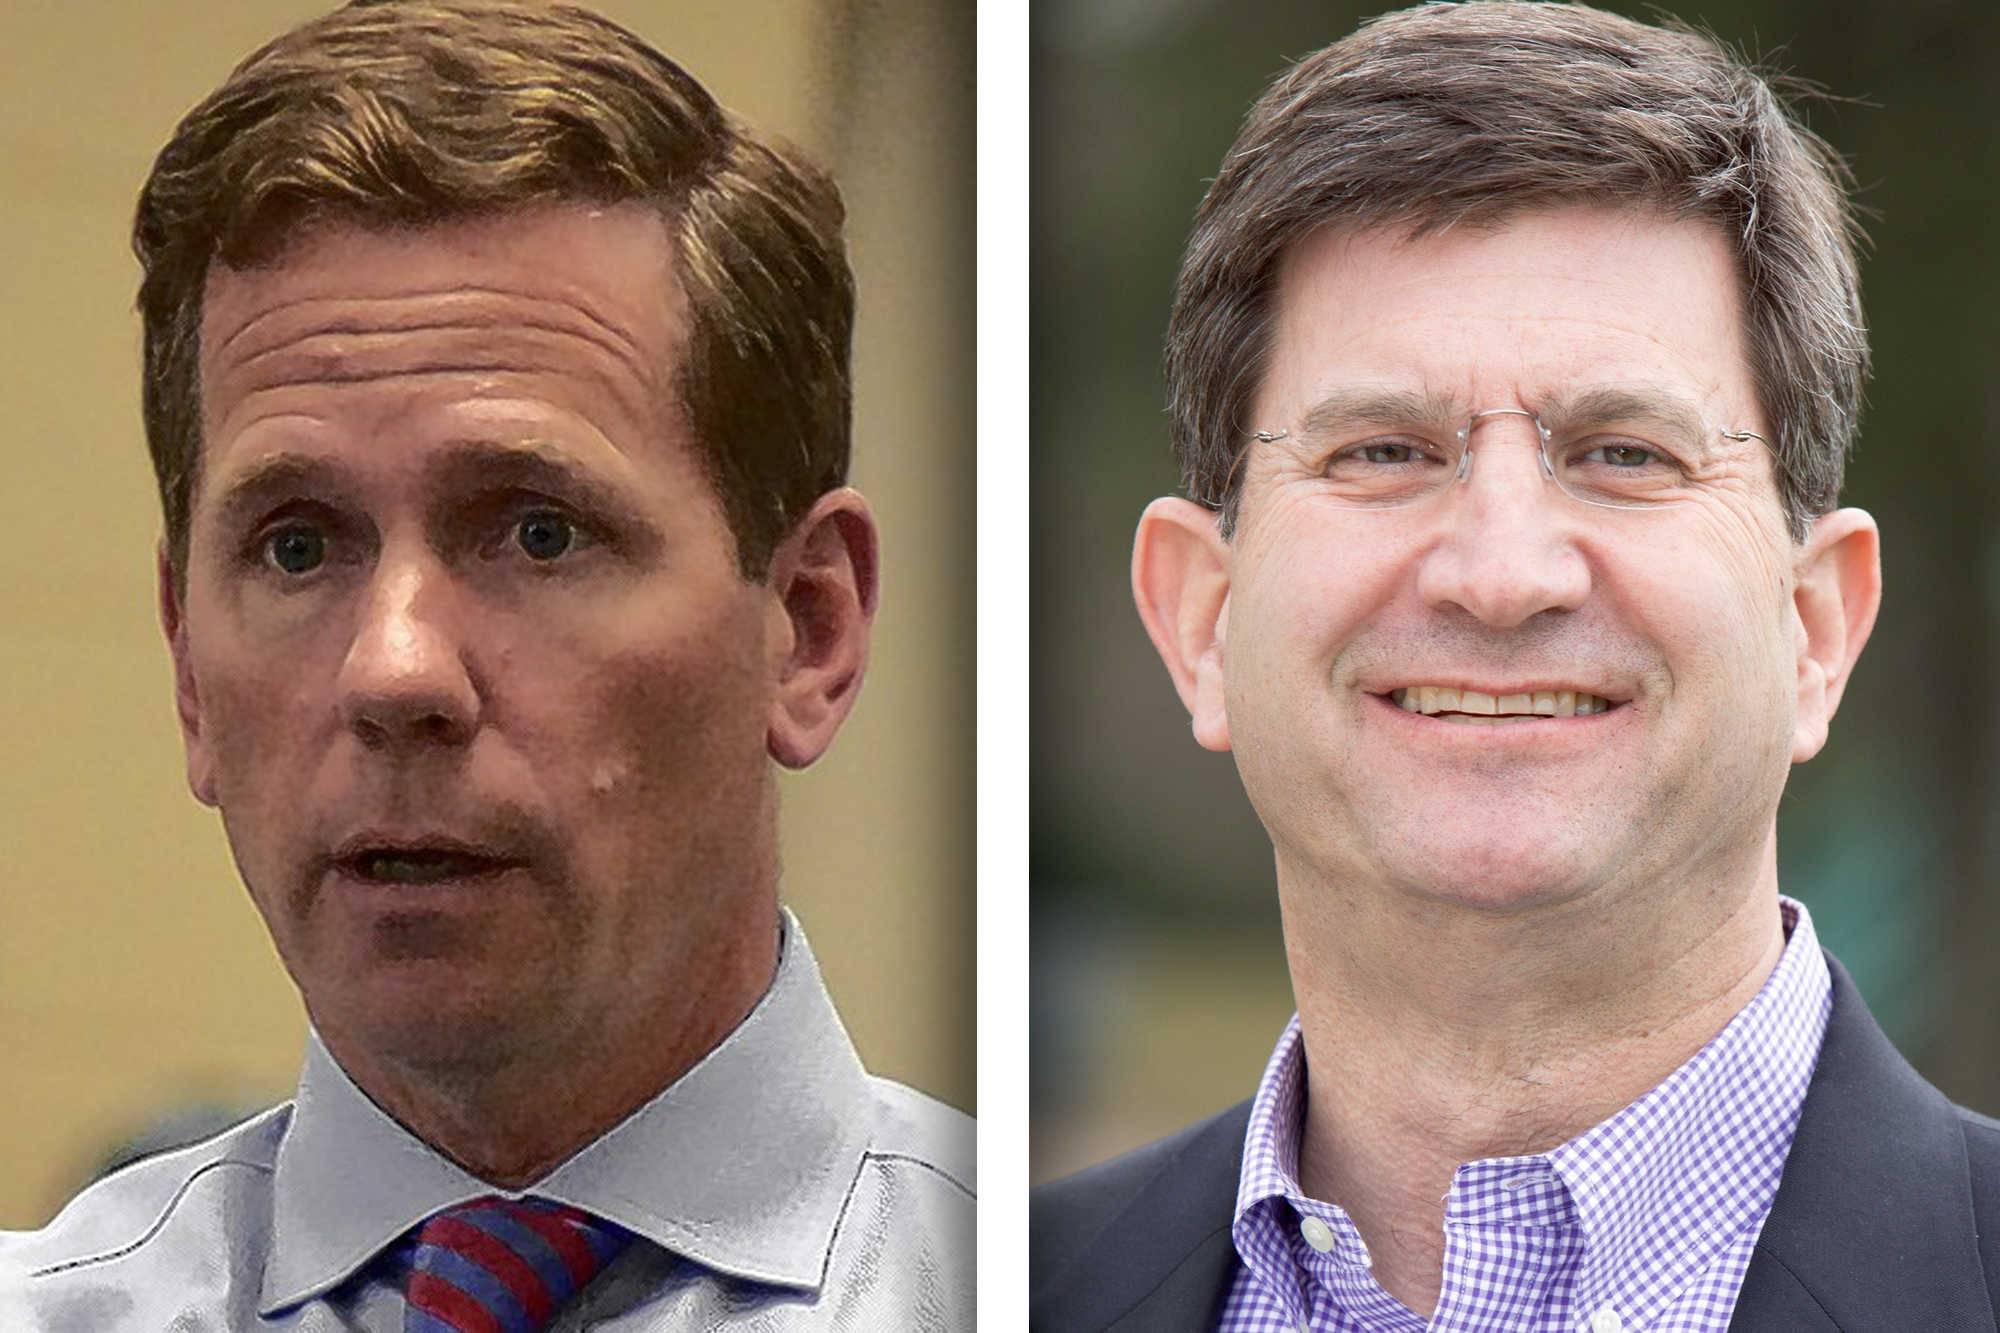 Republican U.S. Rep. Bob Dold, left, and Democrat Brad Schneider are candidates for 10th District in the U.S. House